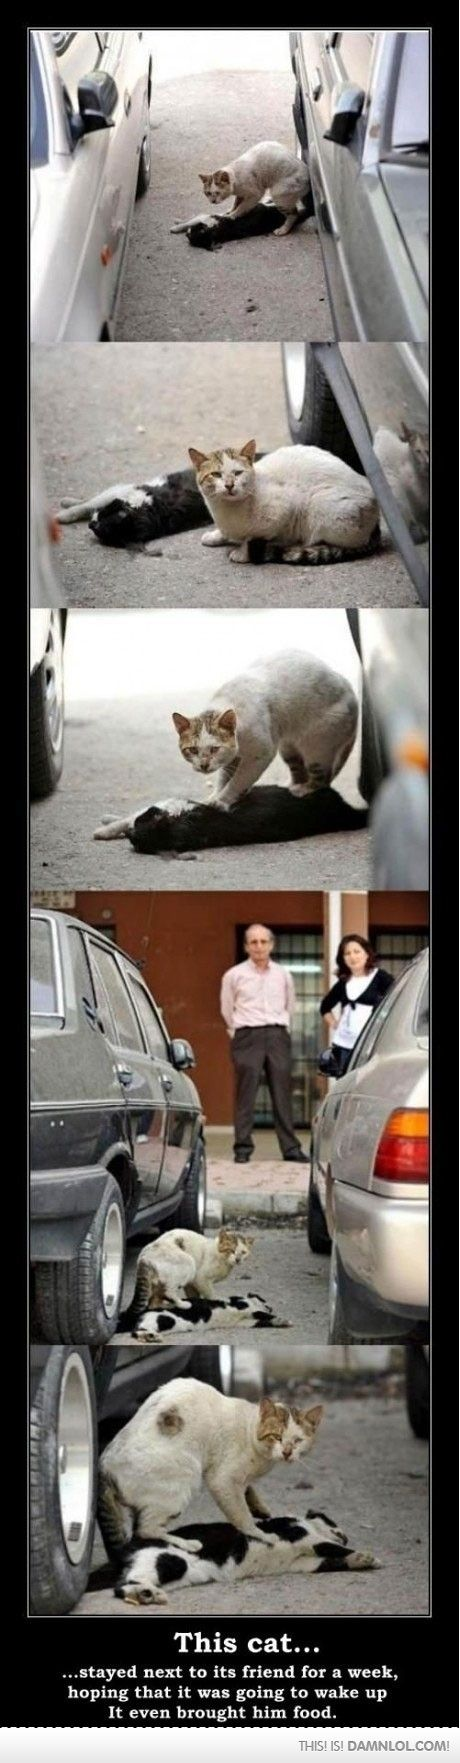 Whoever killed this poor cat is a jerk, I don't care if it was by an accident. #animalshavefeelingstoo